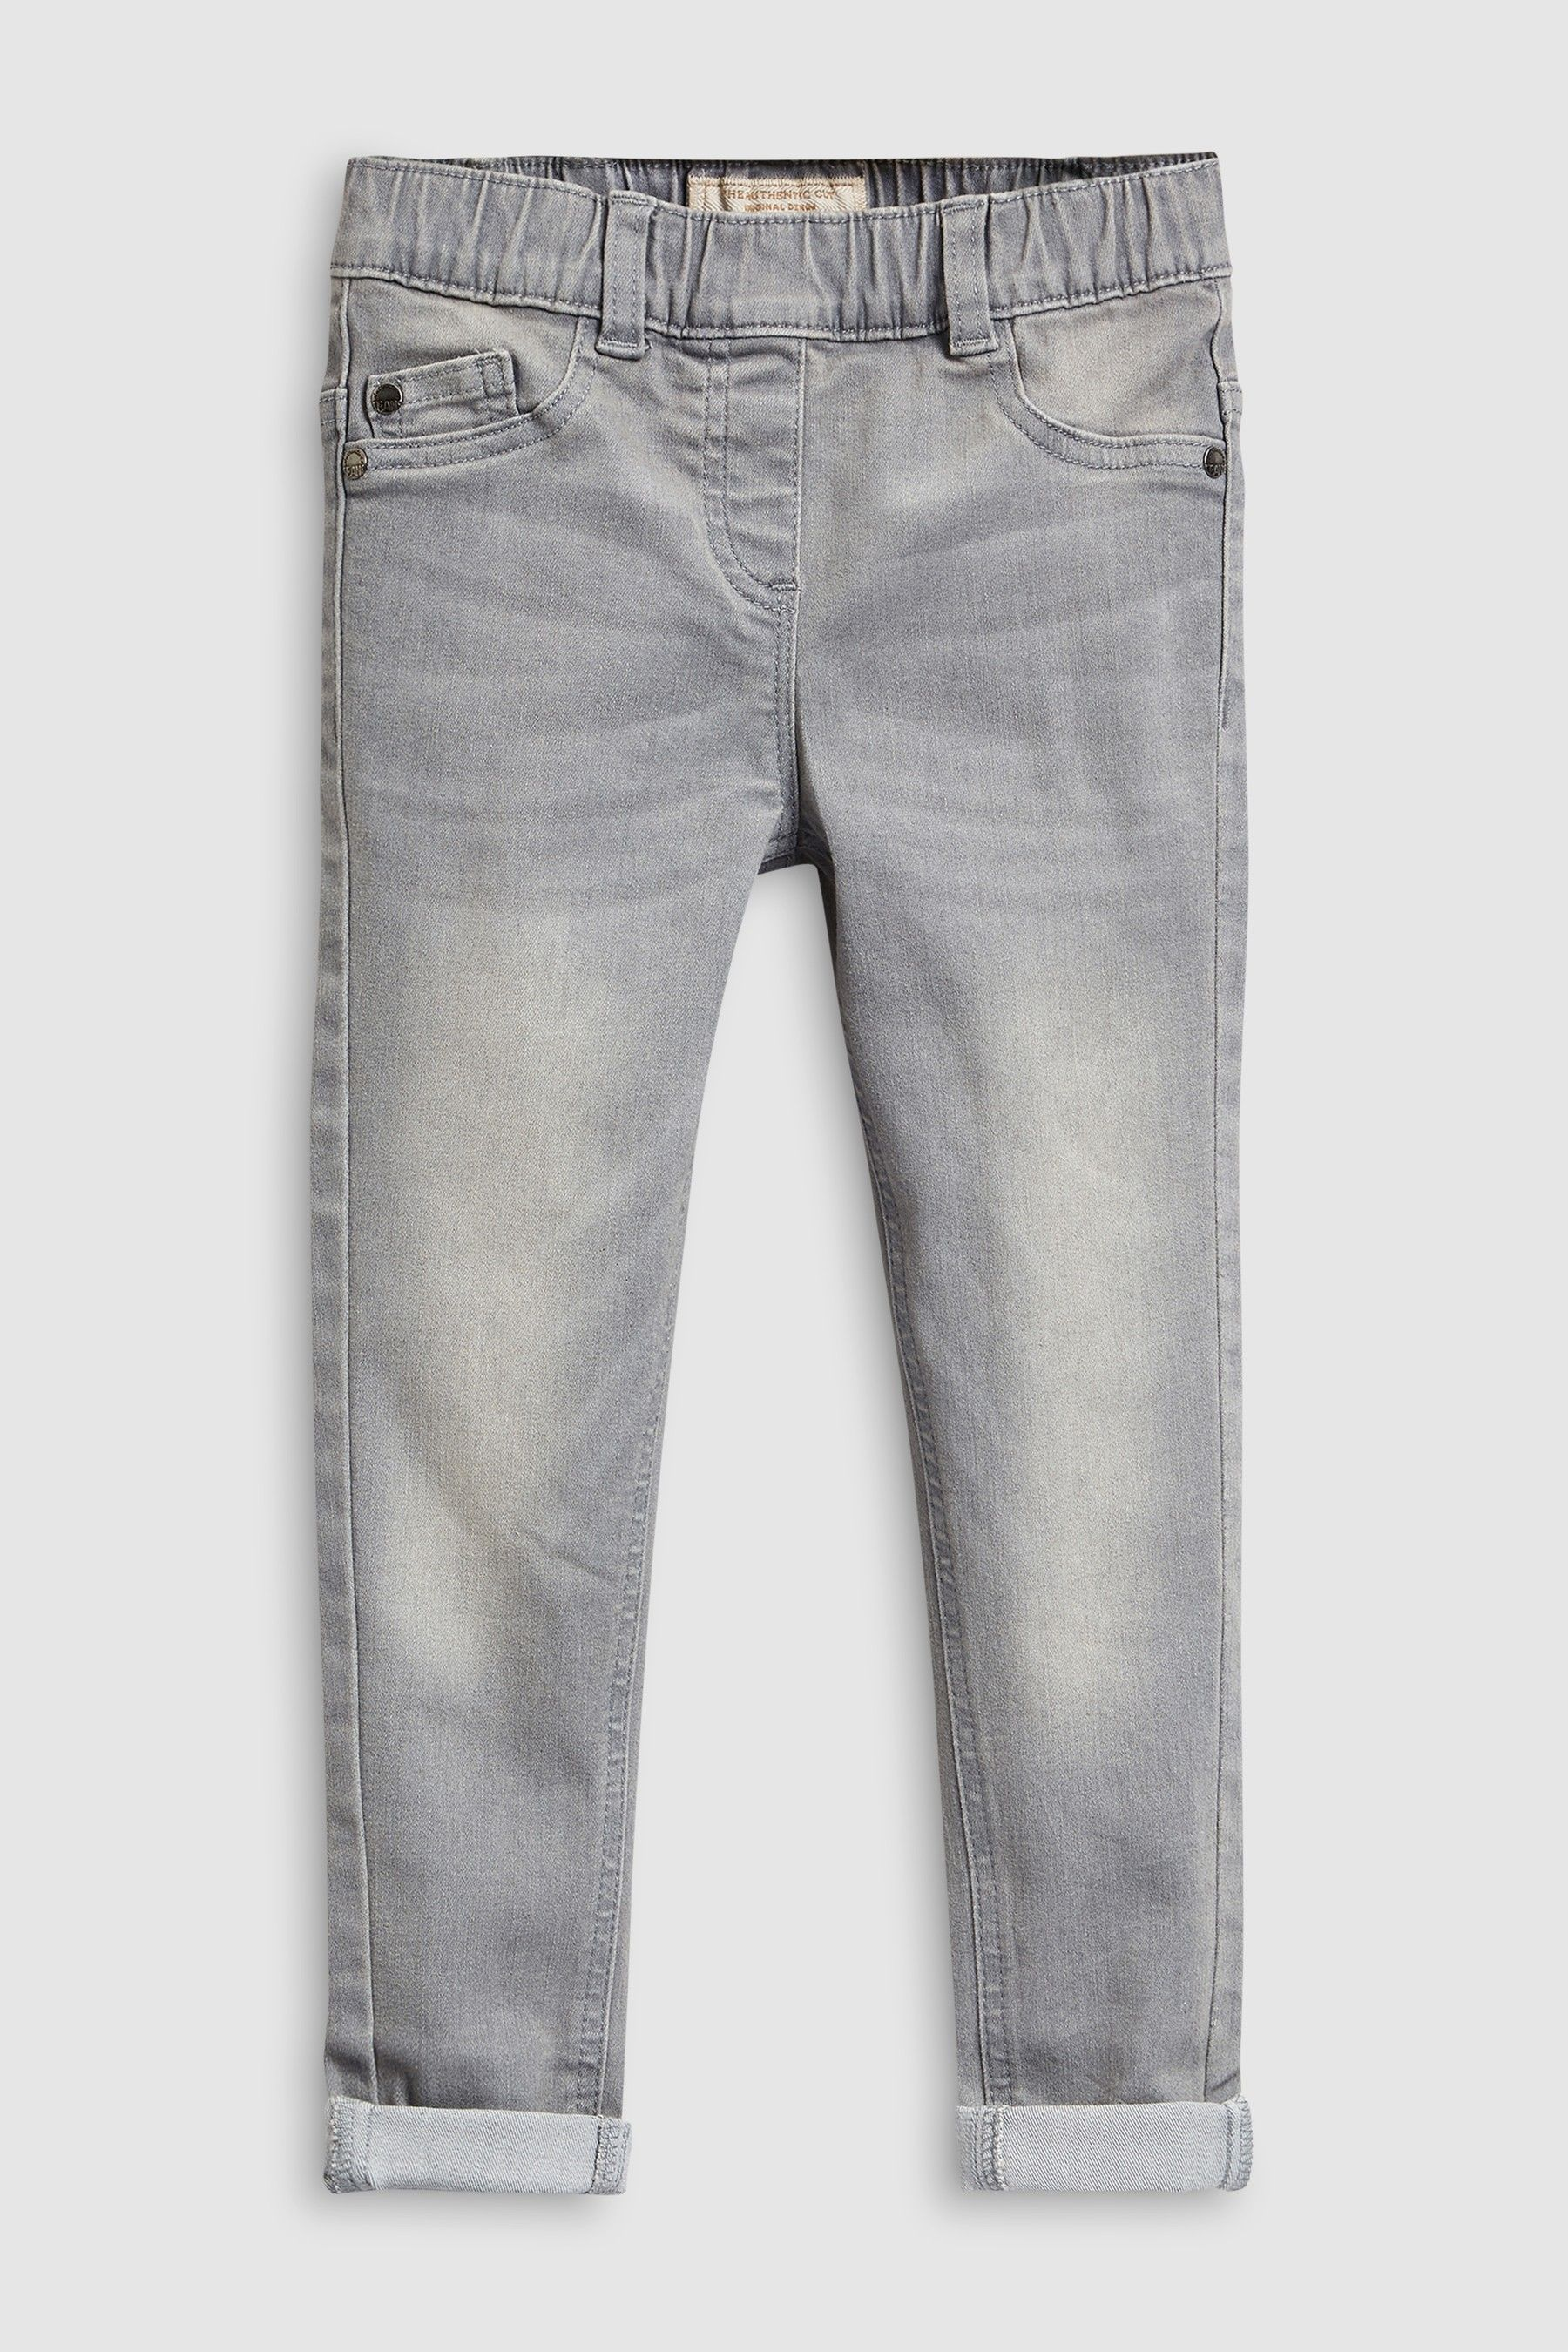 cheap for sale fashion promo codes Girls Next Grey Denim Jeggings (3-16yrs) - Grey   Products ...